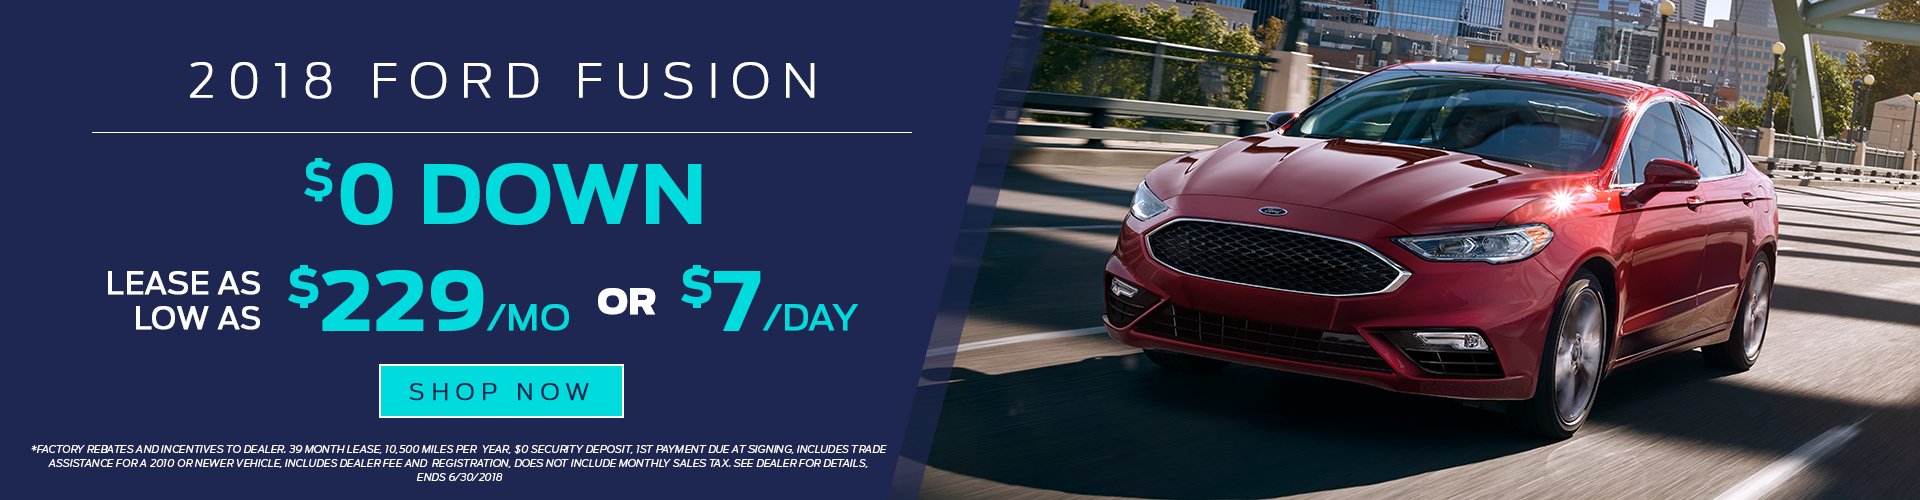 2018 Ford Fusion for Lease